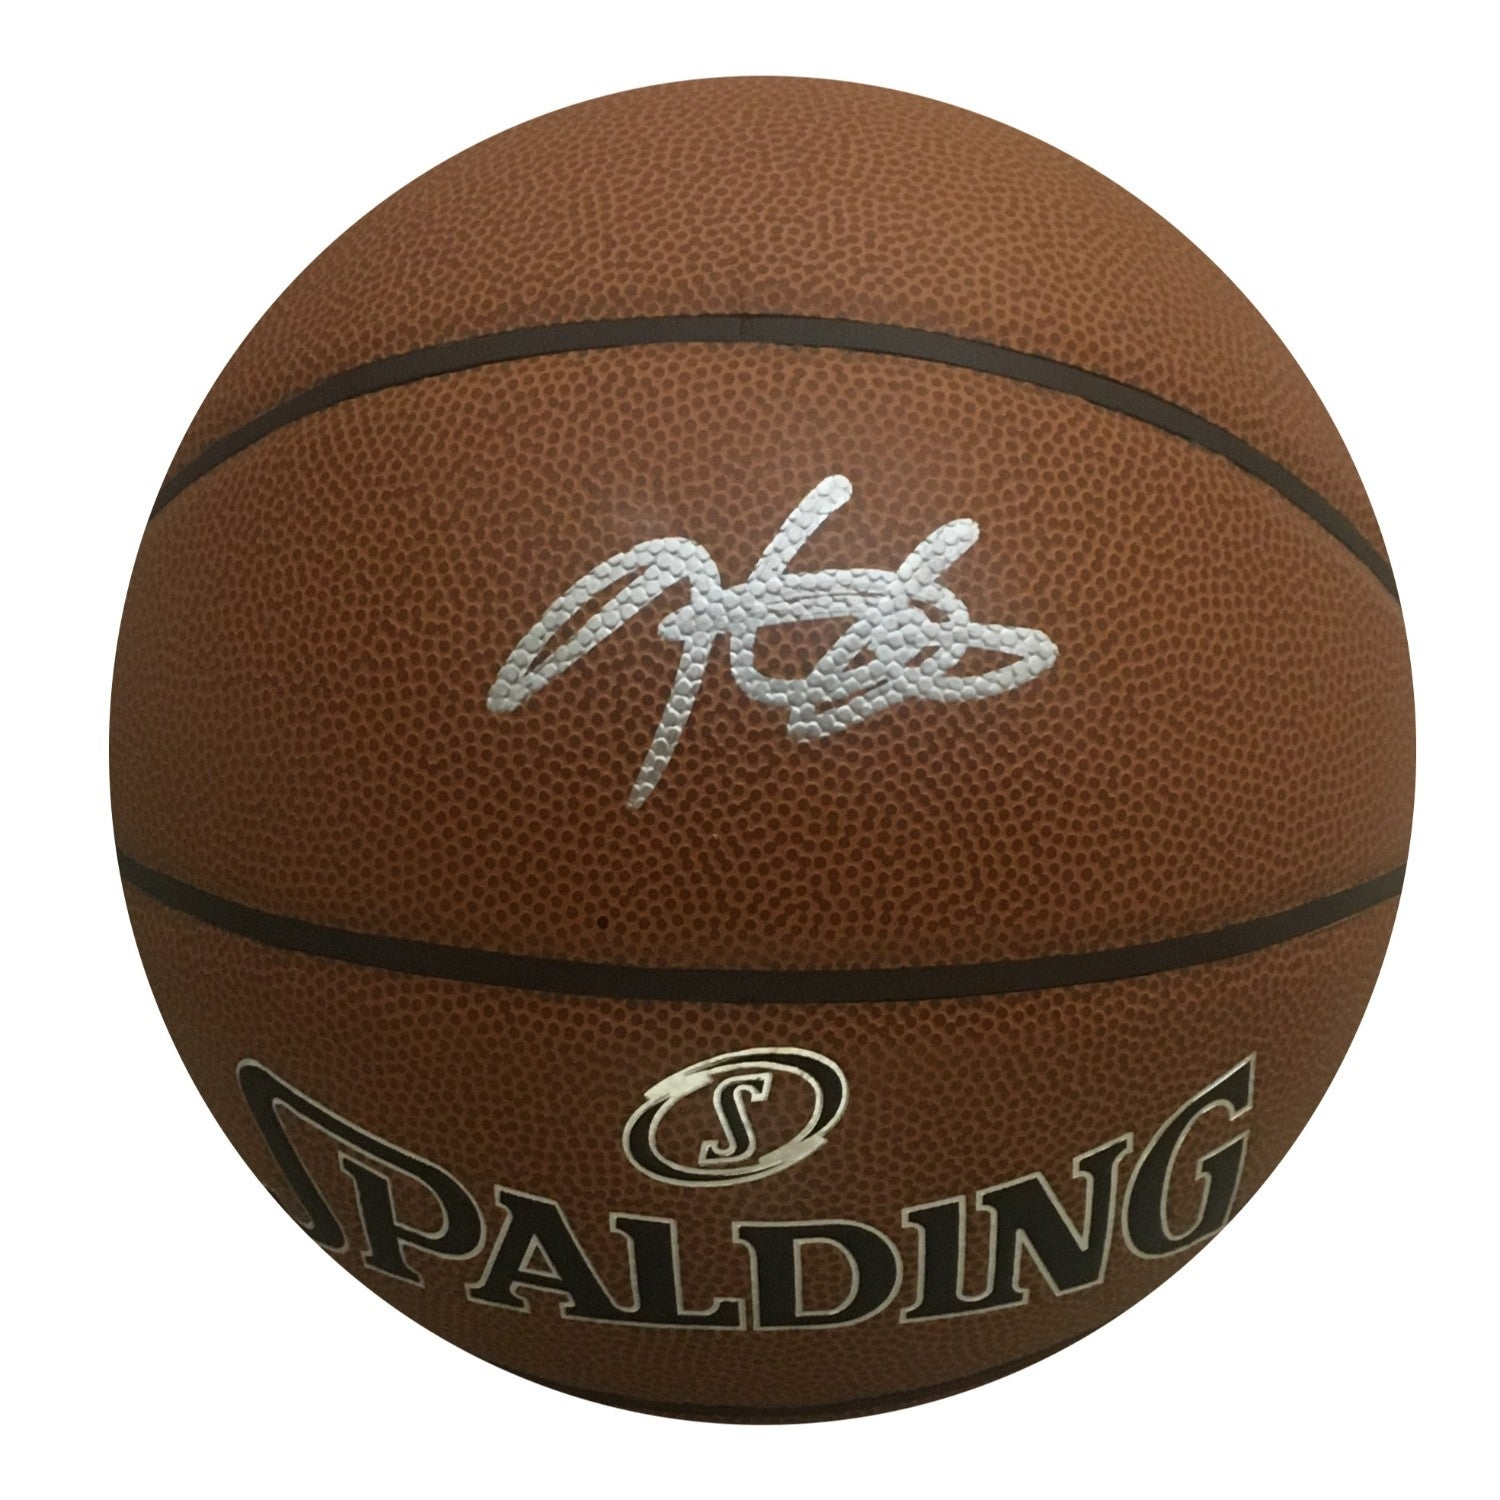 outlet store f8b09 b9a5e Kevin Durant Golden State Warriors Autographed NBA Signed Basketball JSA  COA 3